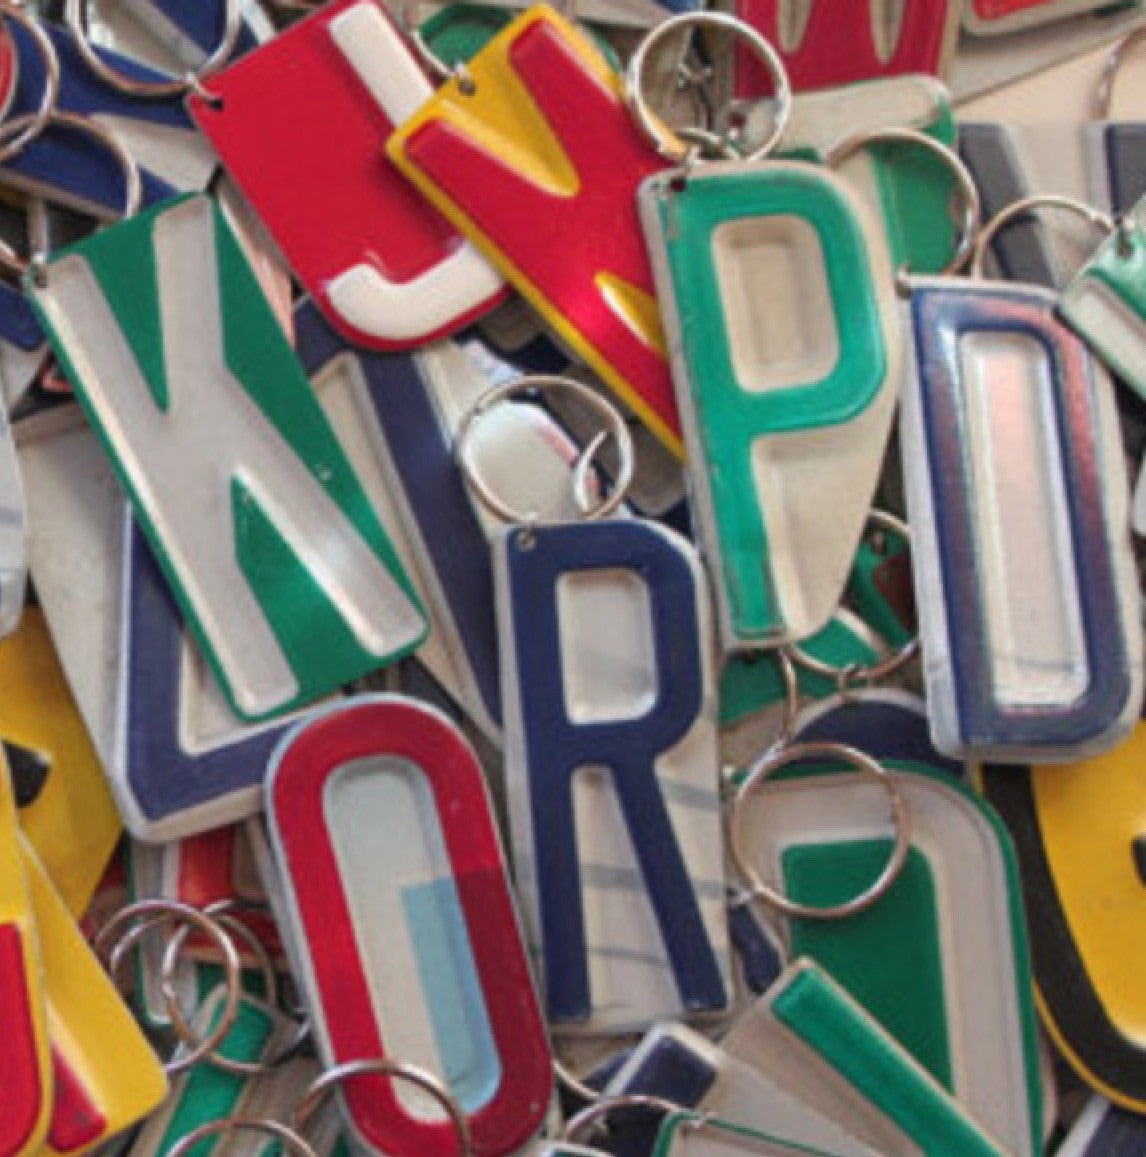 License Plate Key Chains - Celebrate Local, Shop The Best of Ohio